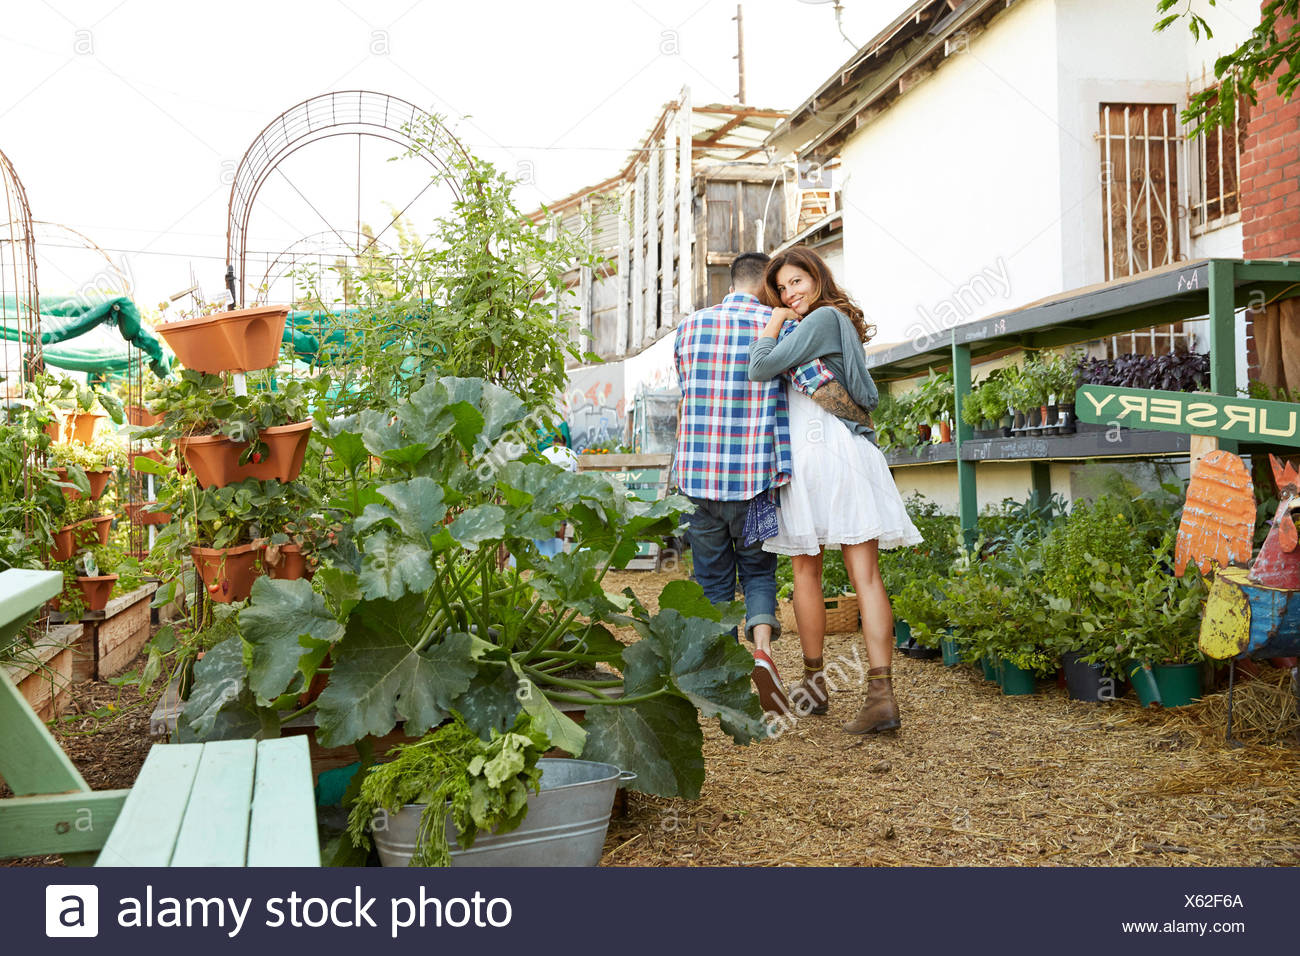 Affectionate couple hugging, walking in plant nursery - Stock Image